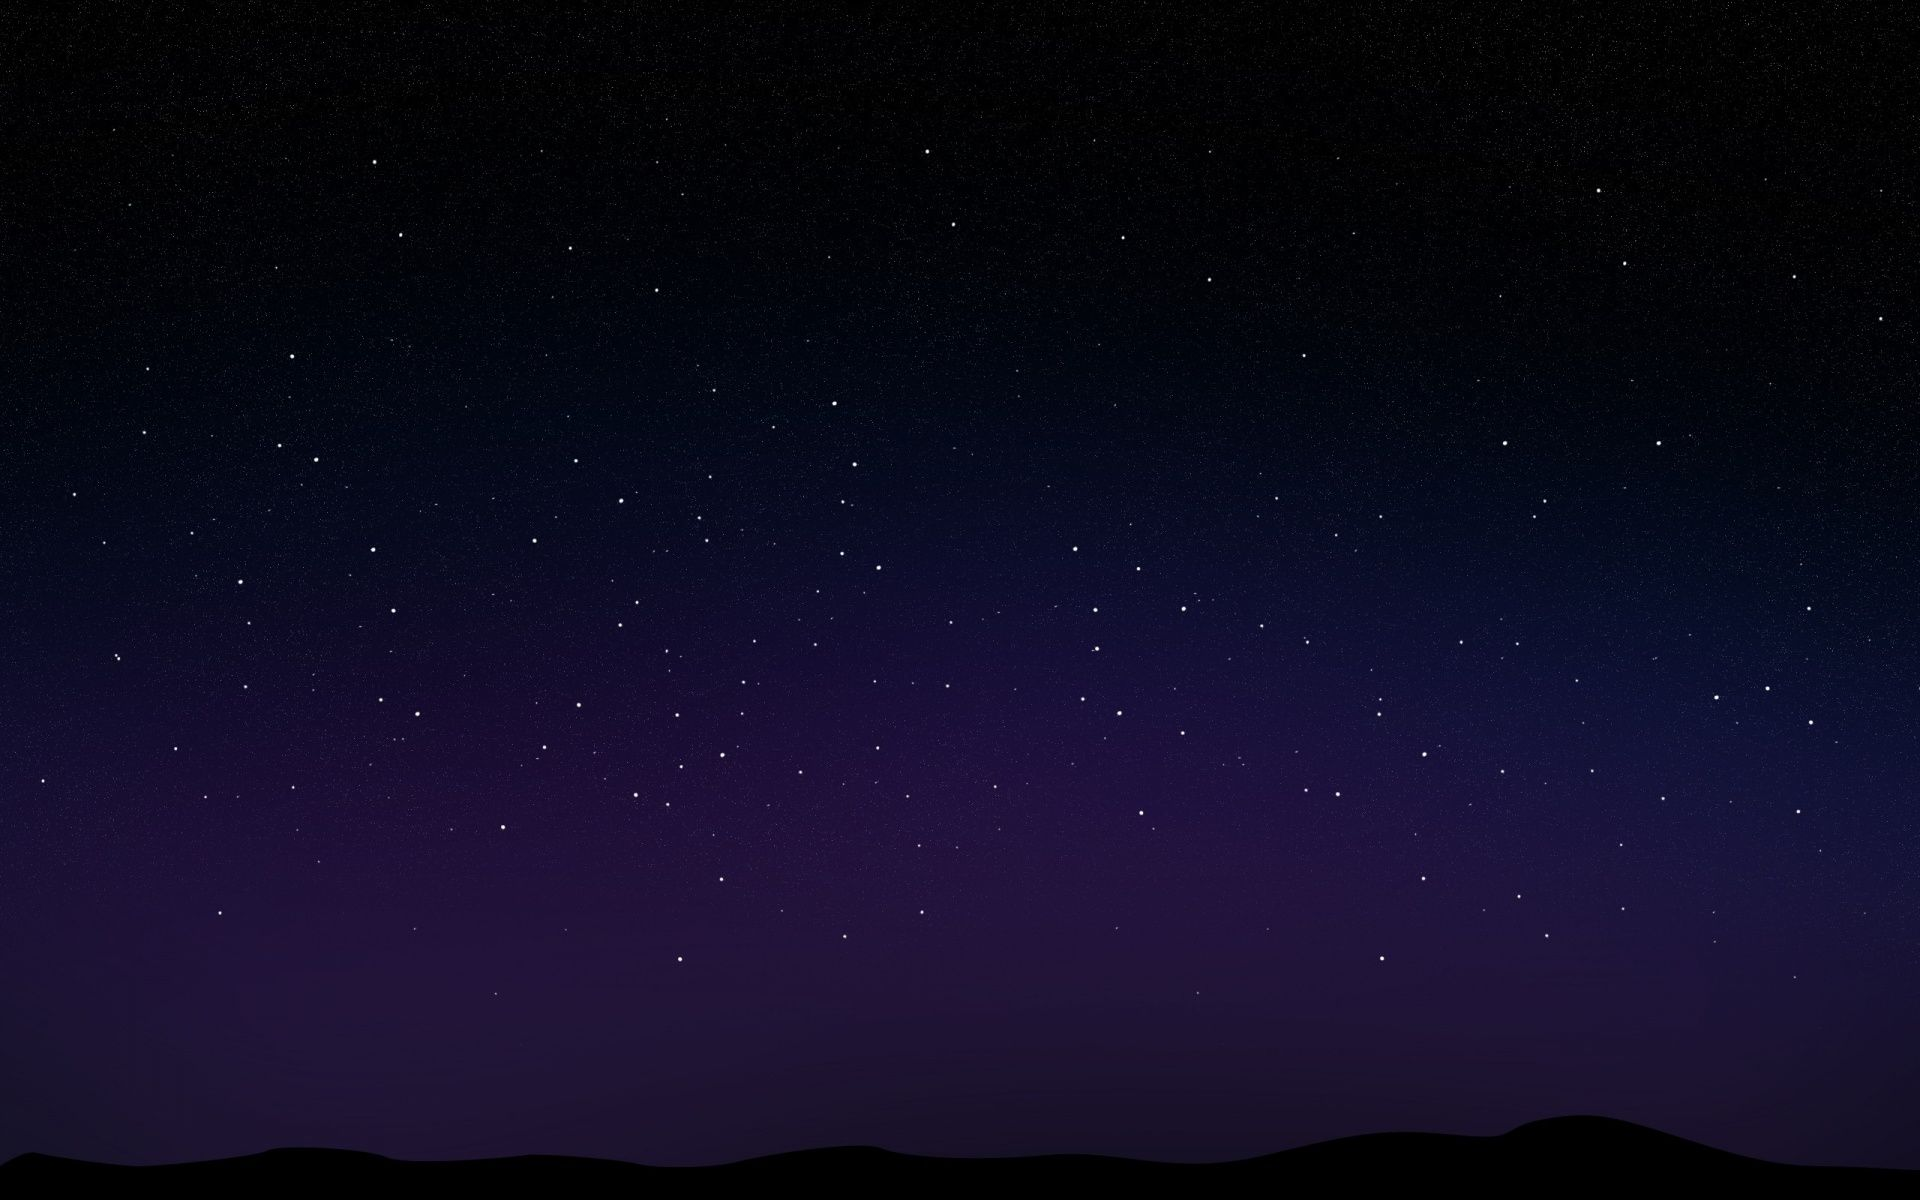 Starry Night Sky 1920x1080 Mtcgy Wallpaper Wp1209517 5dwallpaper